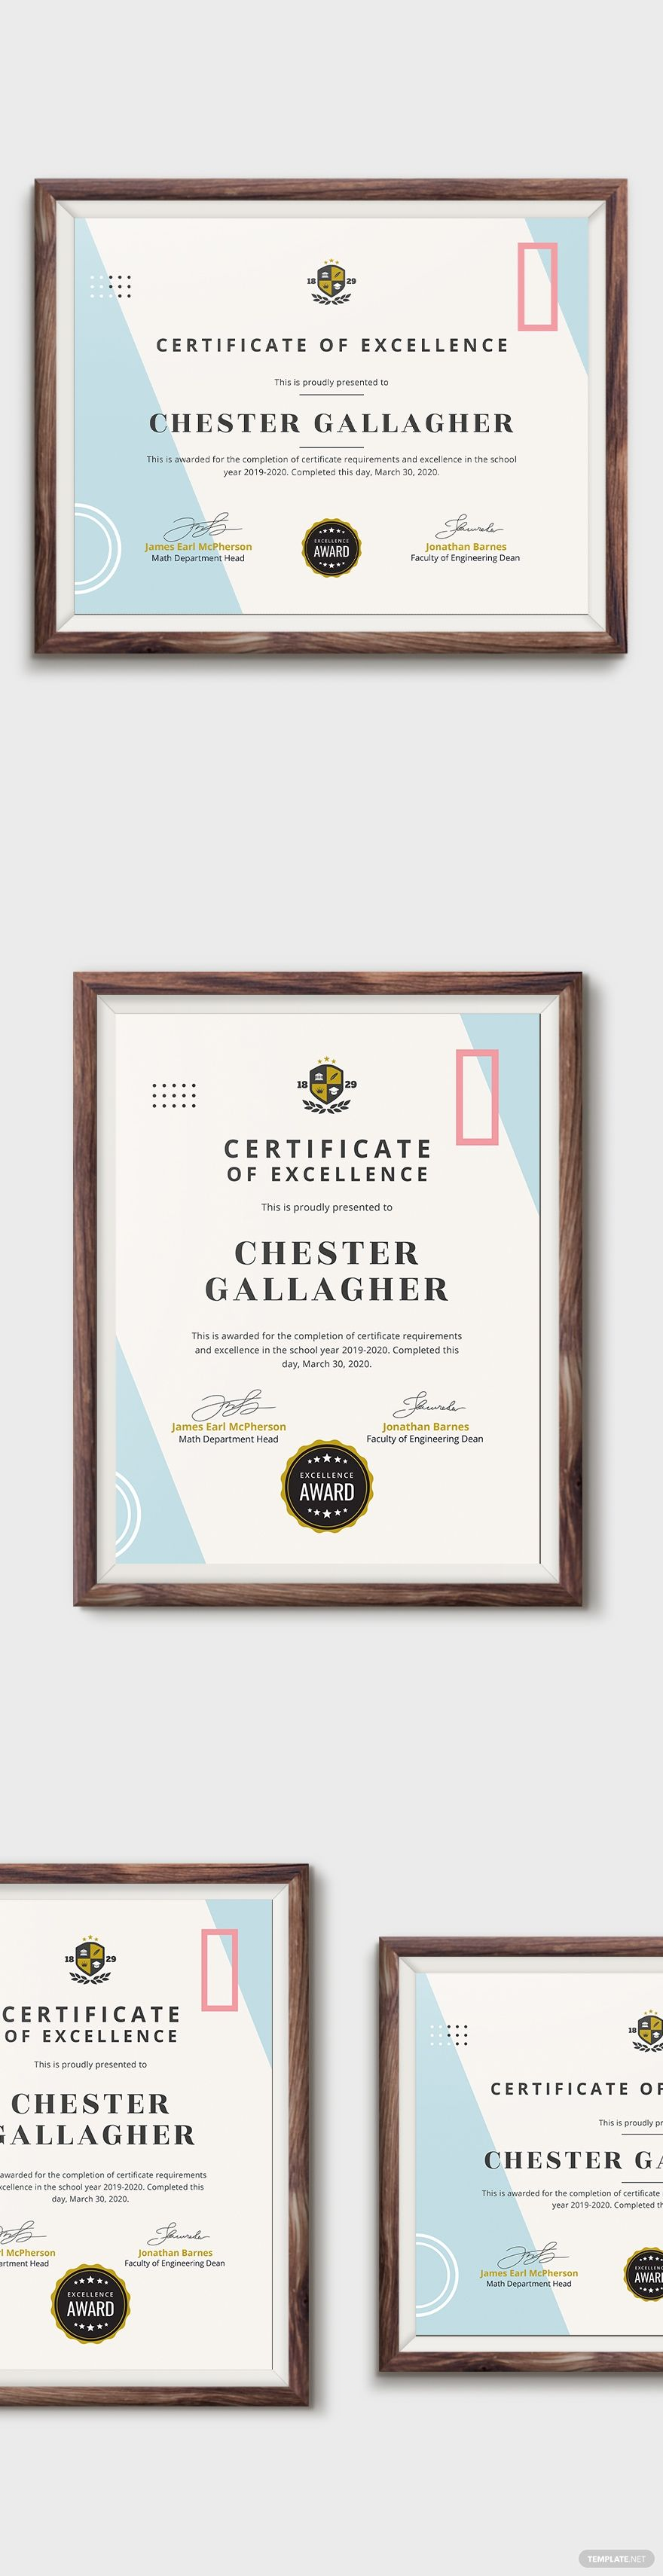 Academic Achievement Certificate Template Word Doc Psd Indesign Apple Mac Pages Publisher Illustrator Certificate Templates Academic Achievement Certificate Microsoft publisher award certificate templates